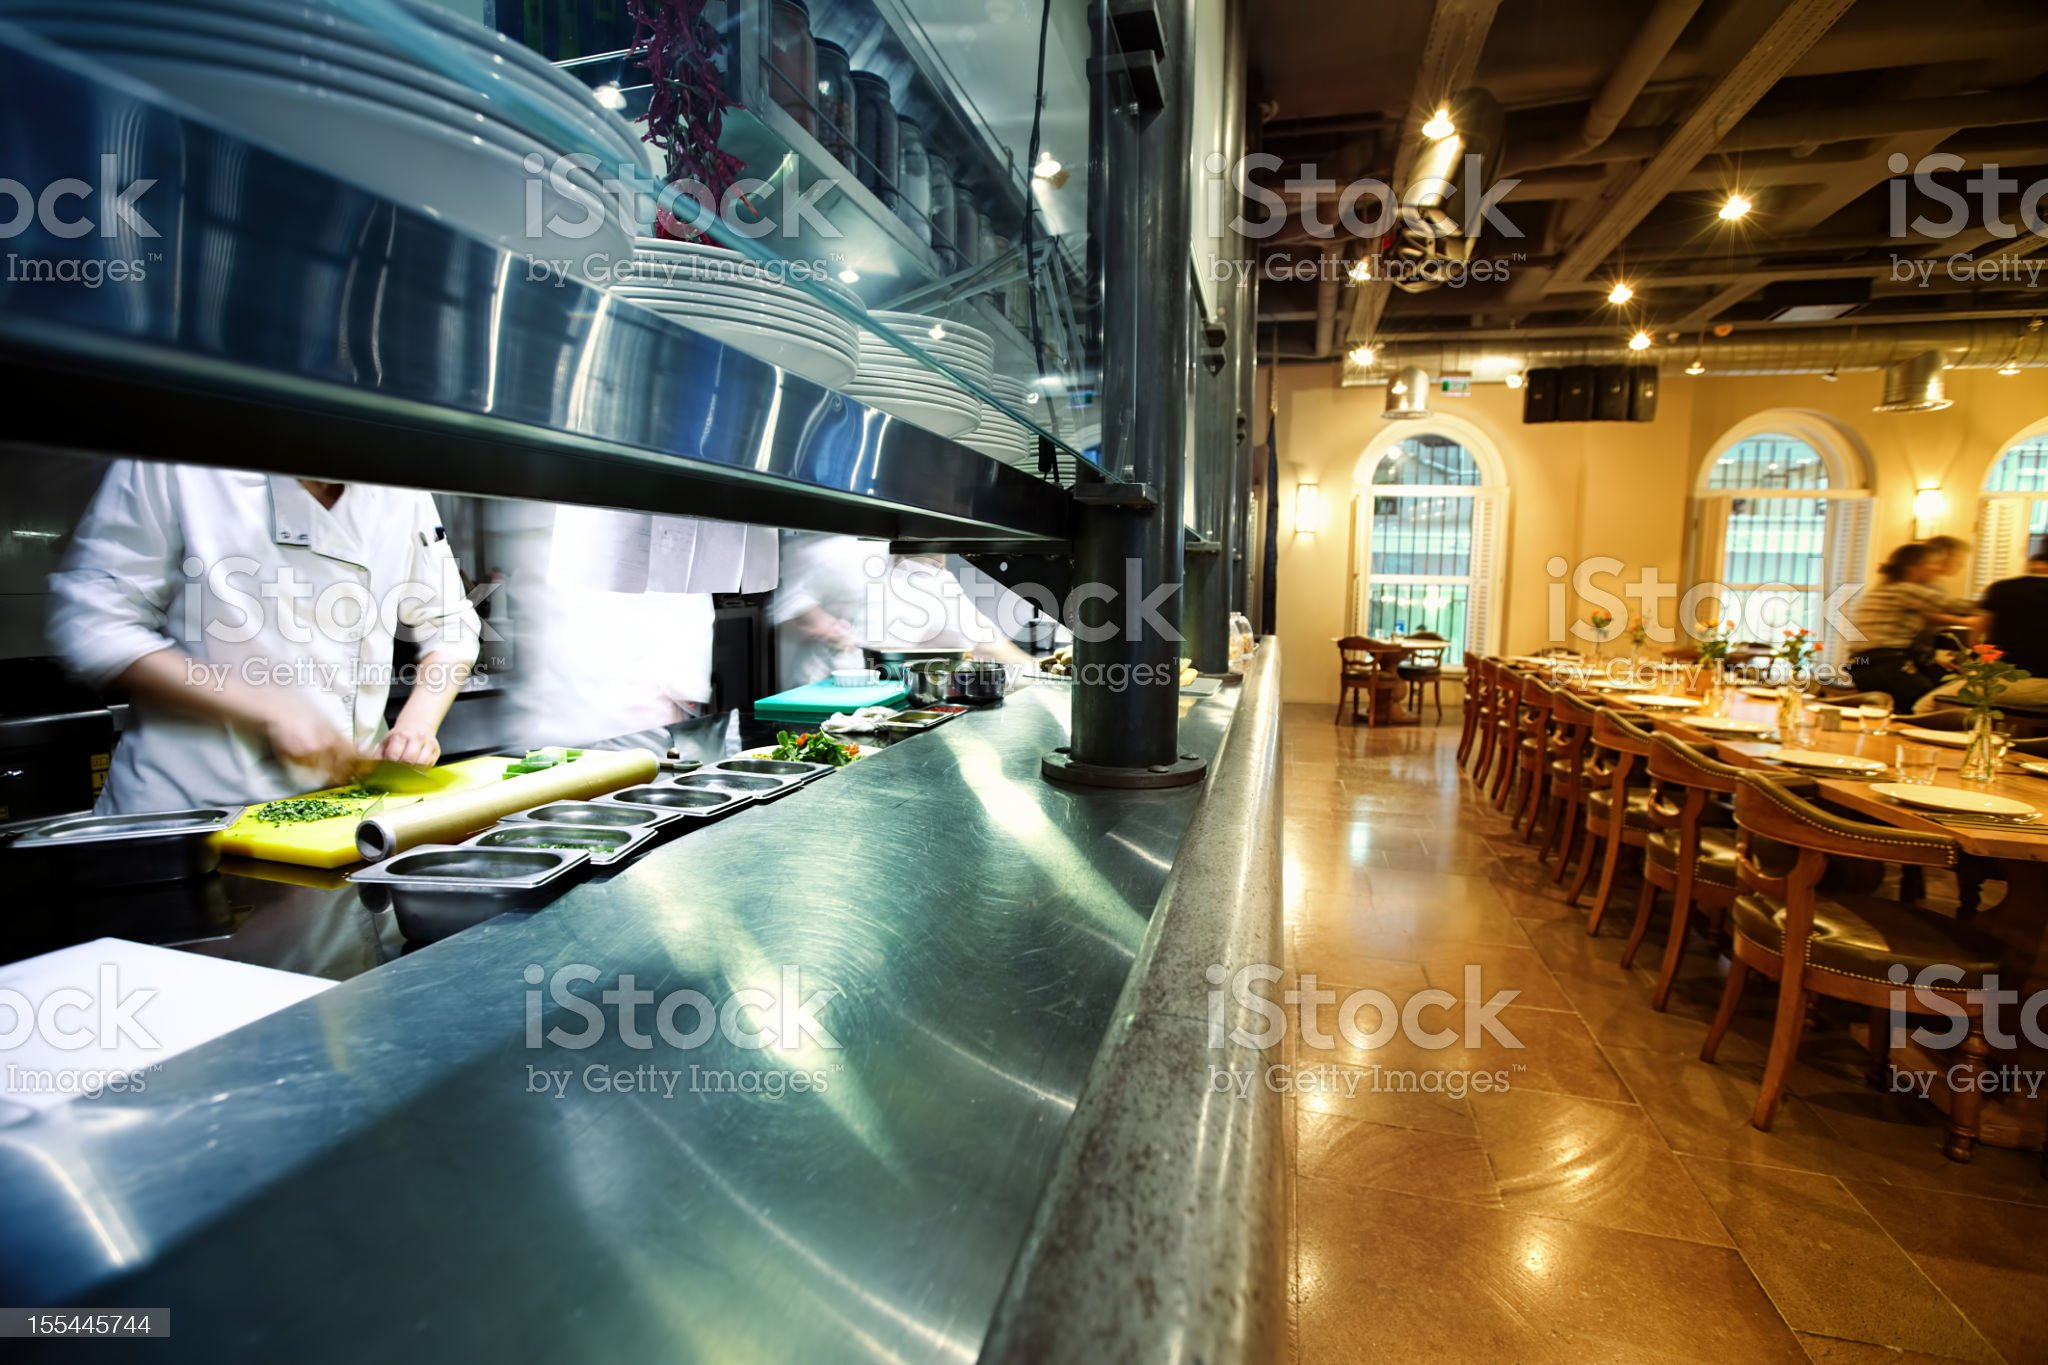 High End Restaurant royalty-free stock photo